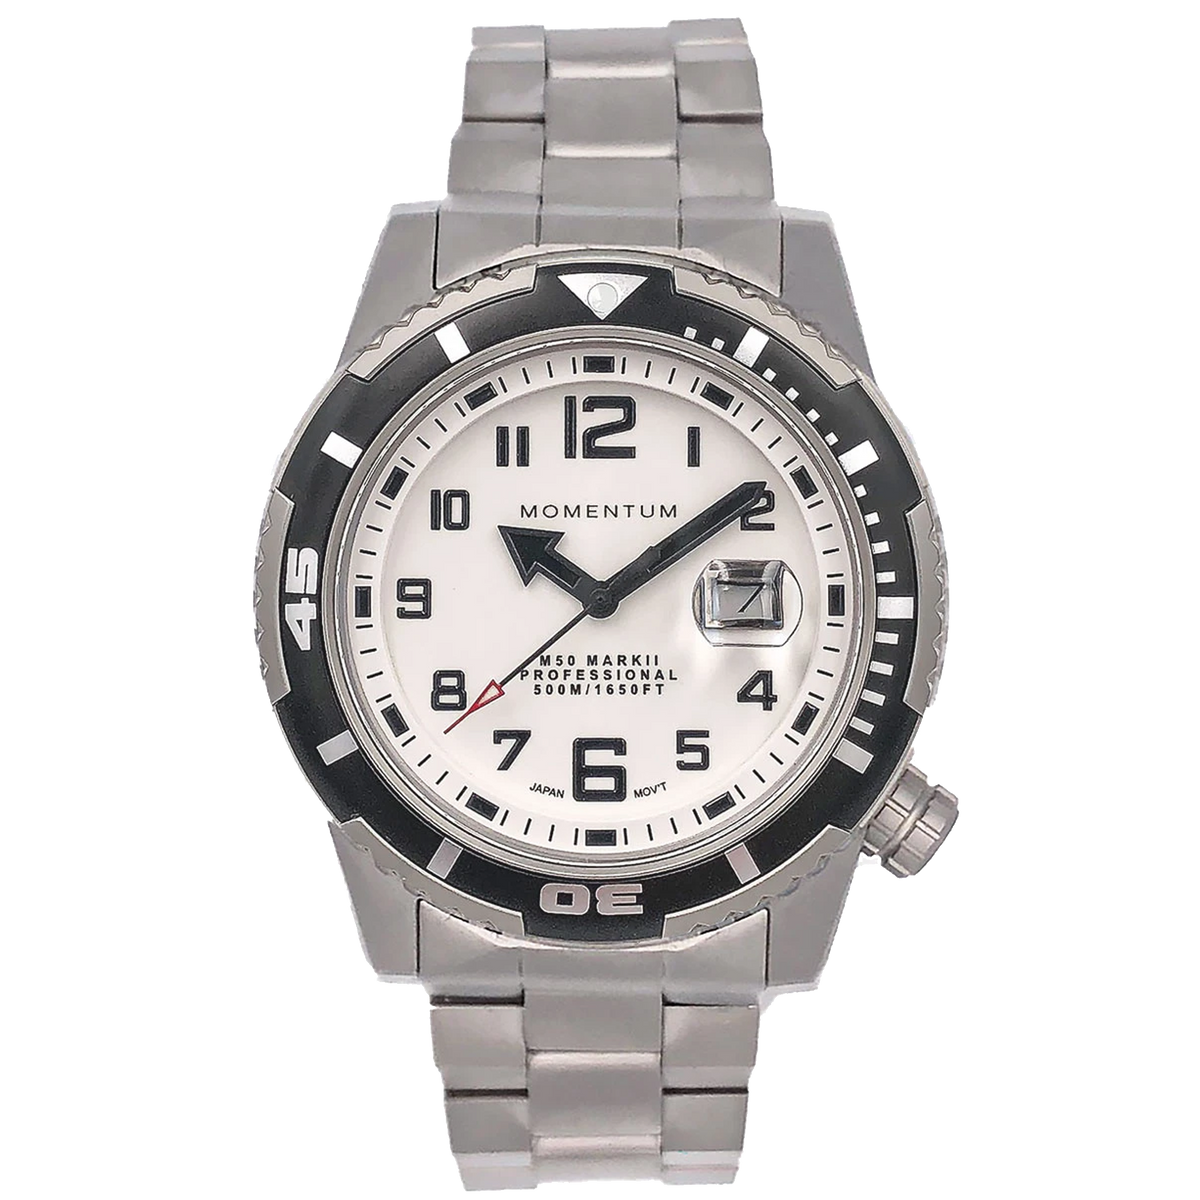 Momentum Watch - M50 Military Dive - White Dial on Steel bracelet